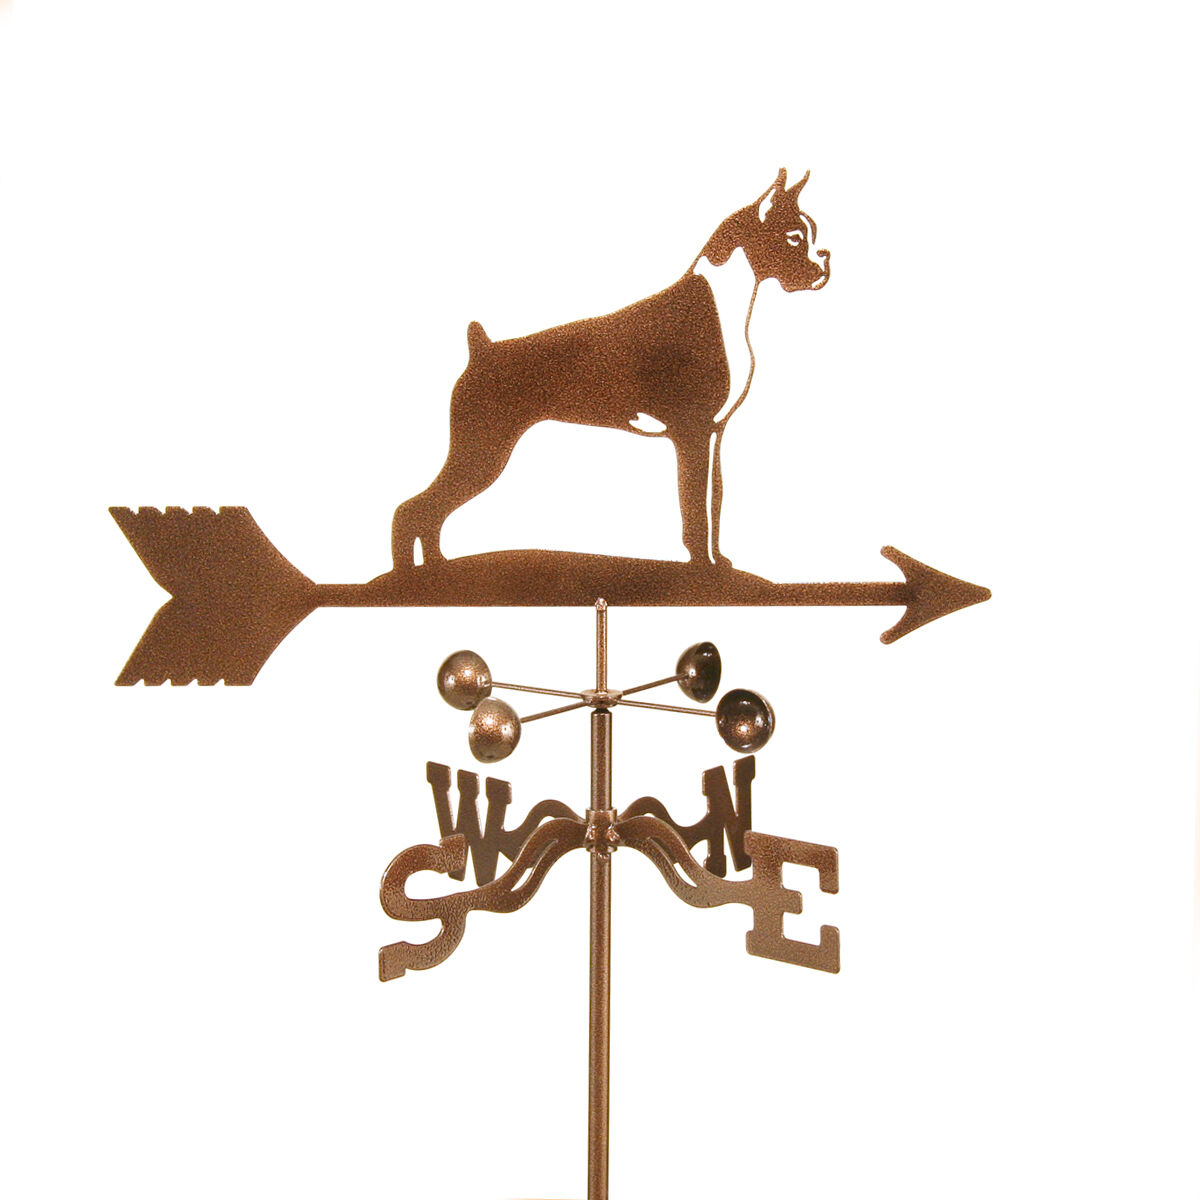 Dog - Boxer Weathervane - Weather Vane - Complete with Choice of Mount